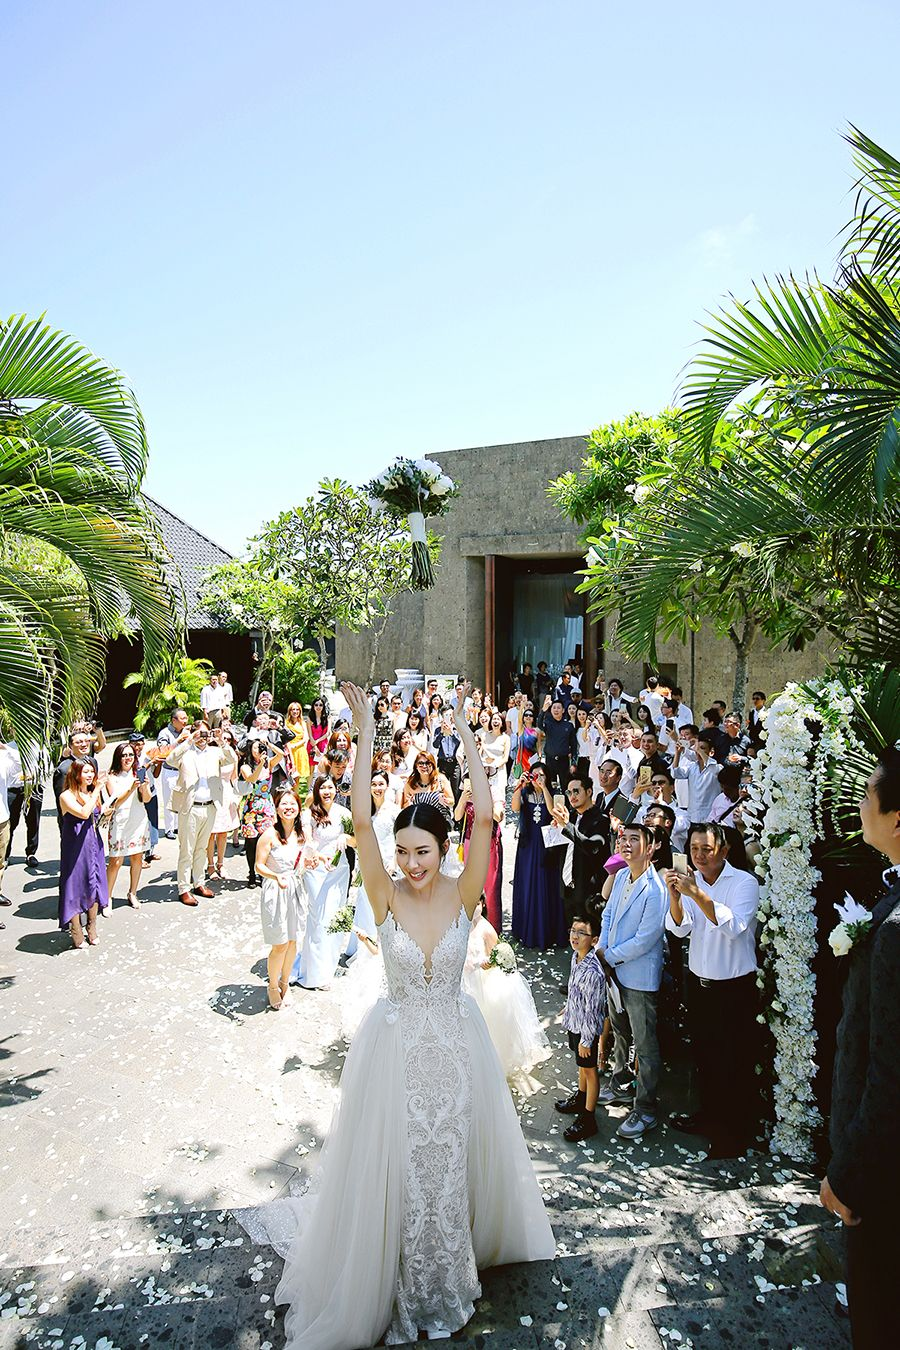 An Exciting Bouquet Toss As The Bride Celebrates Her Marriage In Stle With A Berta Wedding